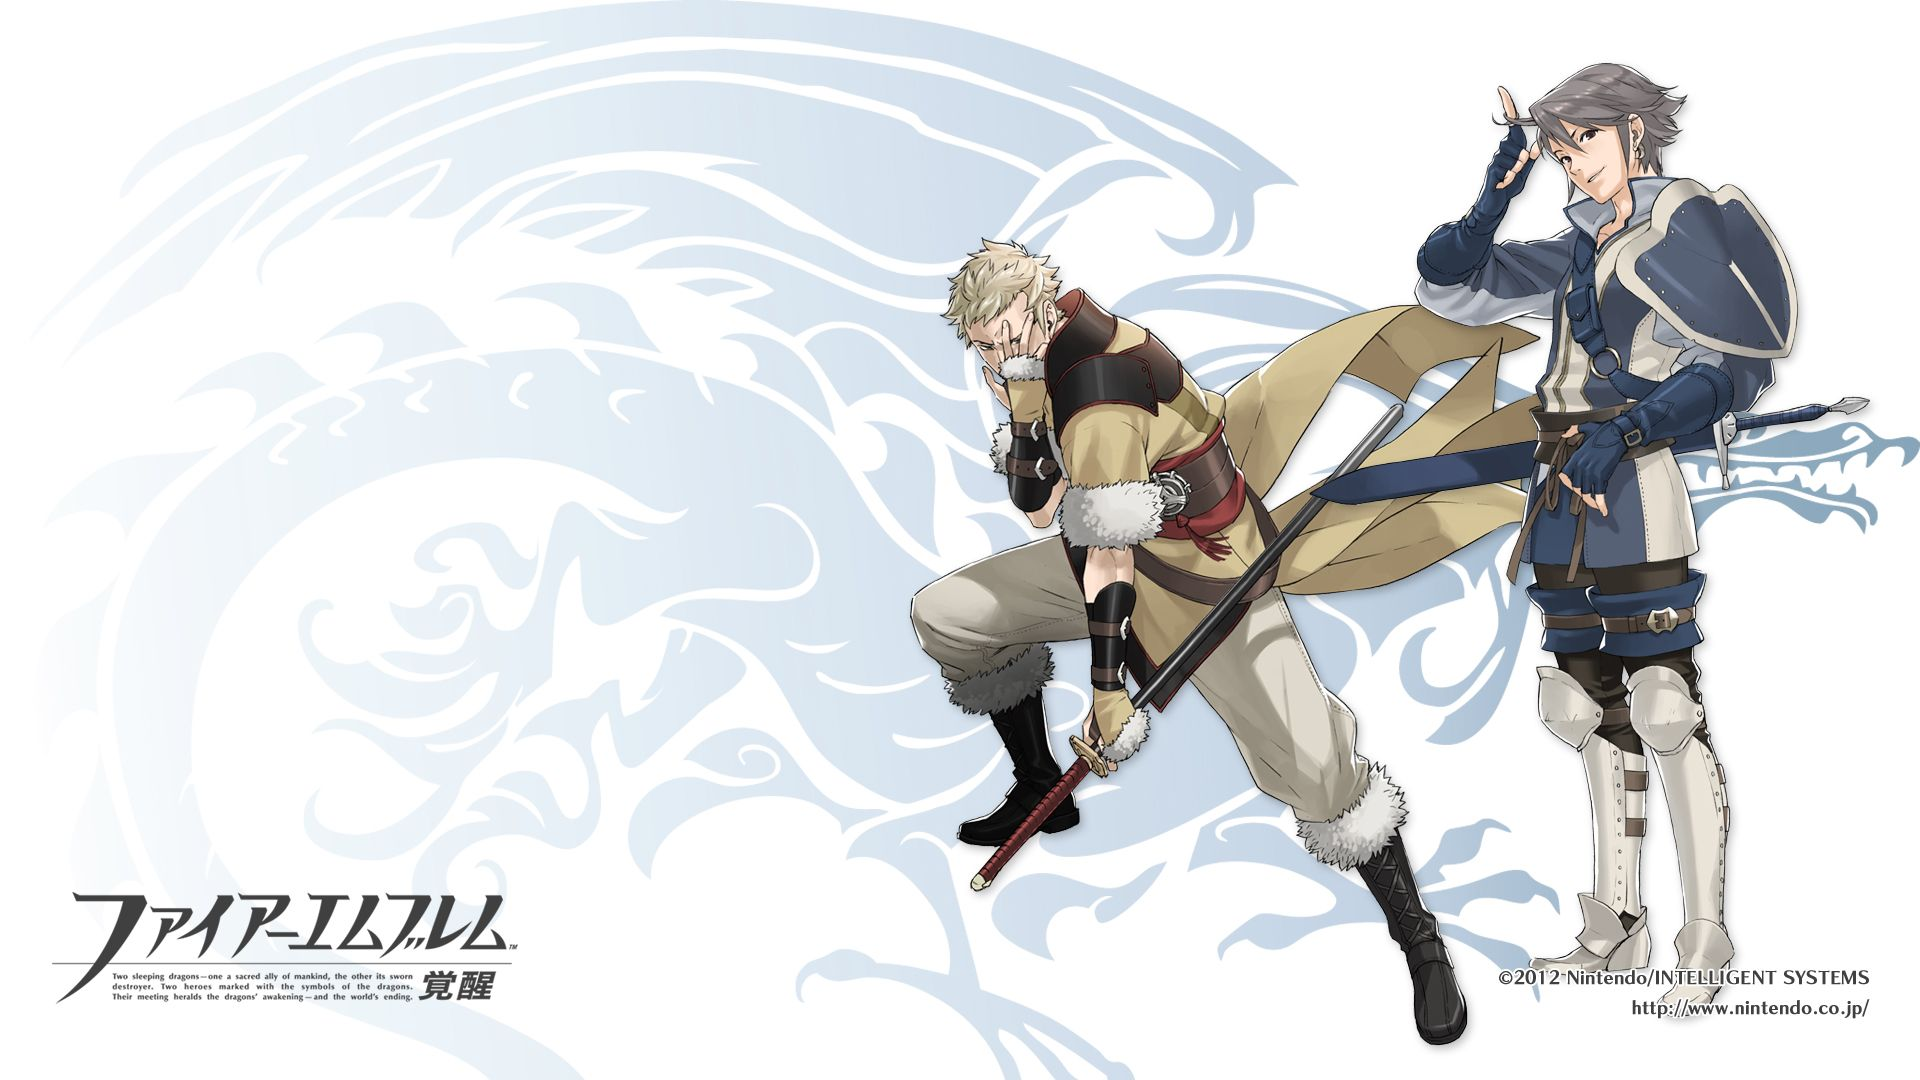 Pin By Clarissa Wise On Fire Emblem Fire Emblem Characters Fire Emblem Fire Emblem Awakening